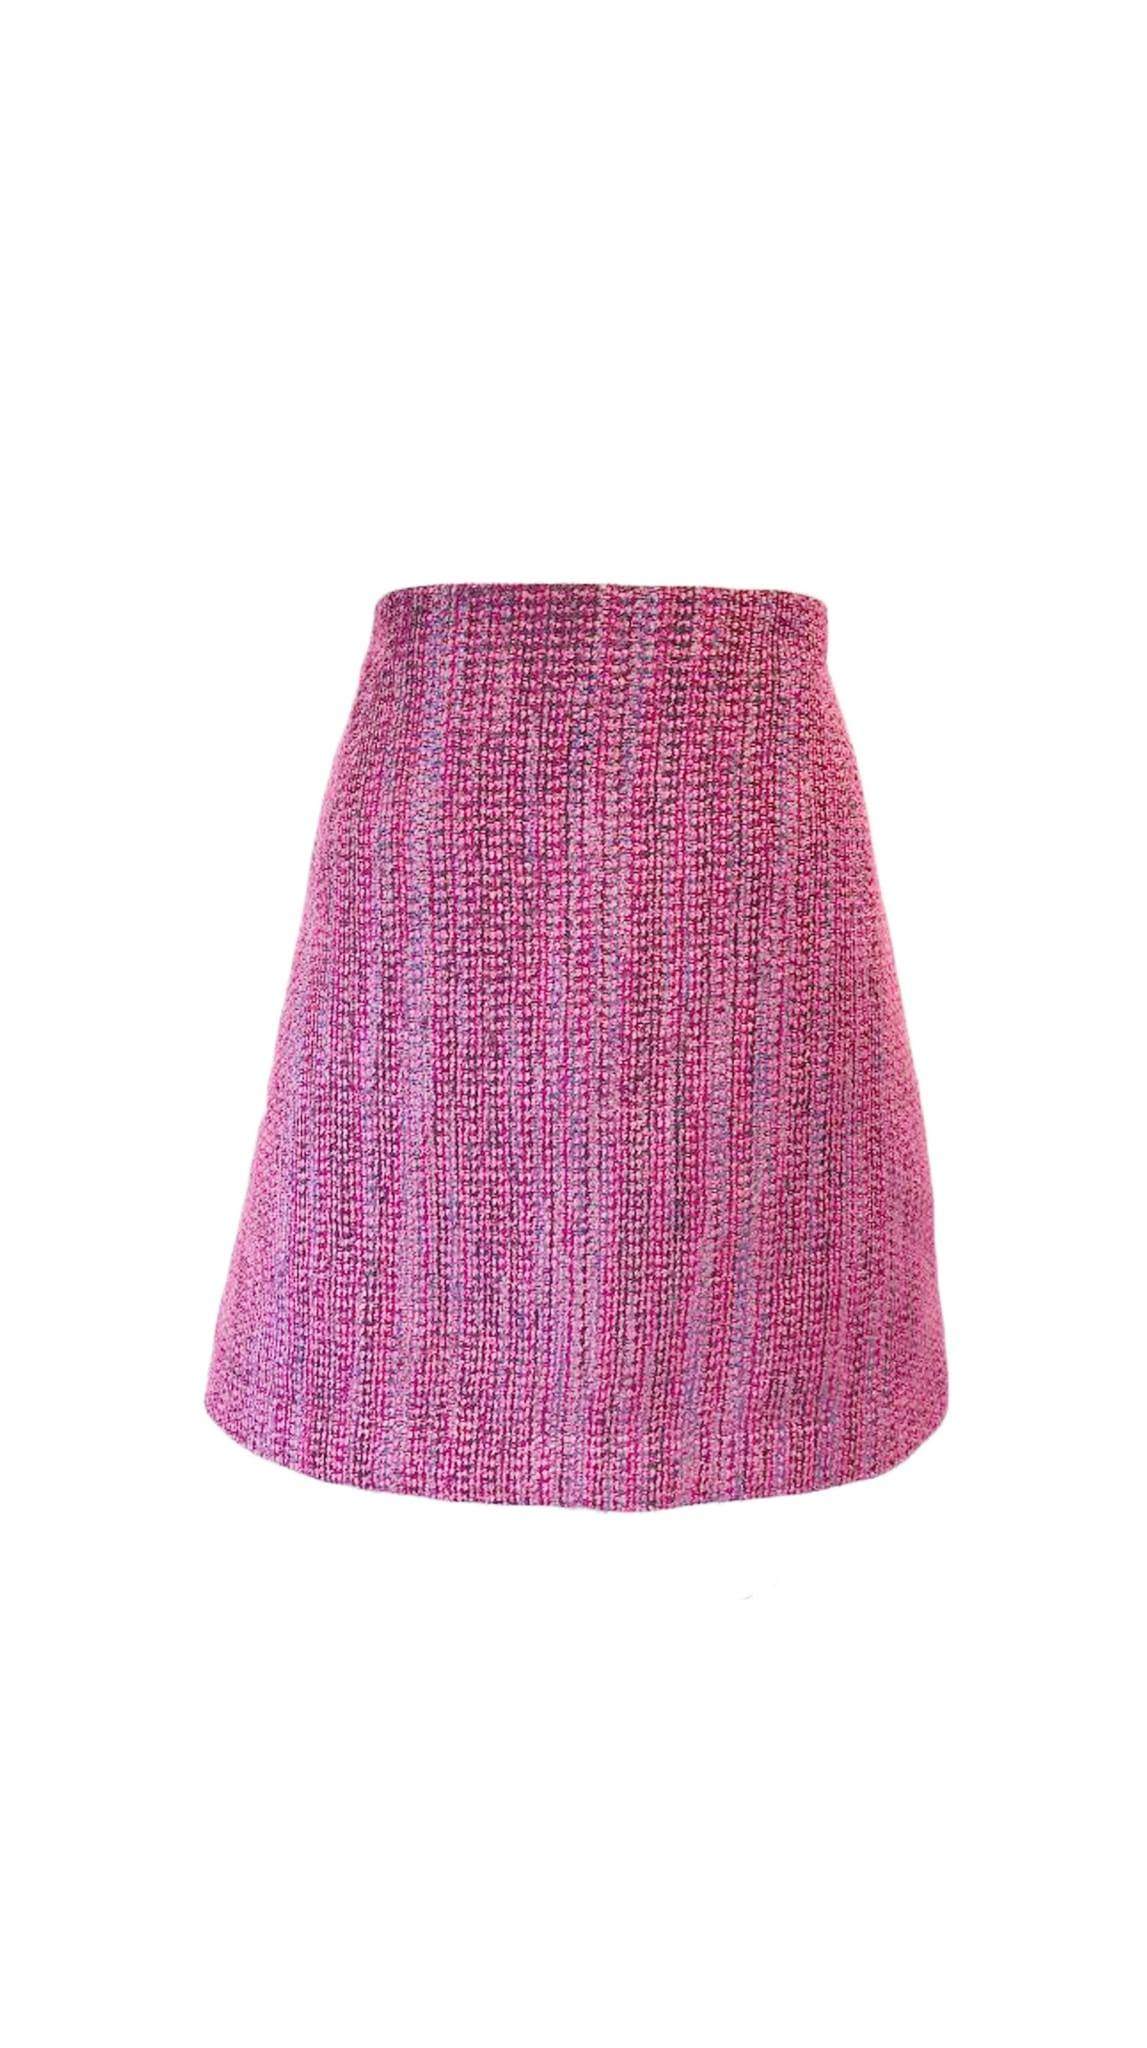 Wool Chi Chic Skirt in Pink by Bianca Zidik | Nineteenth Amendment